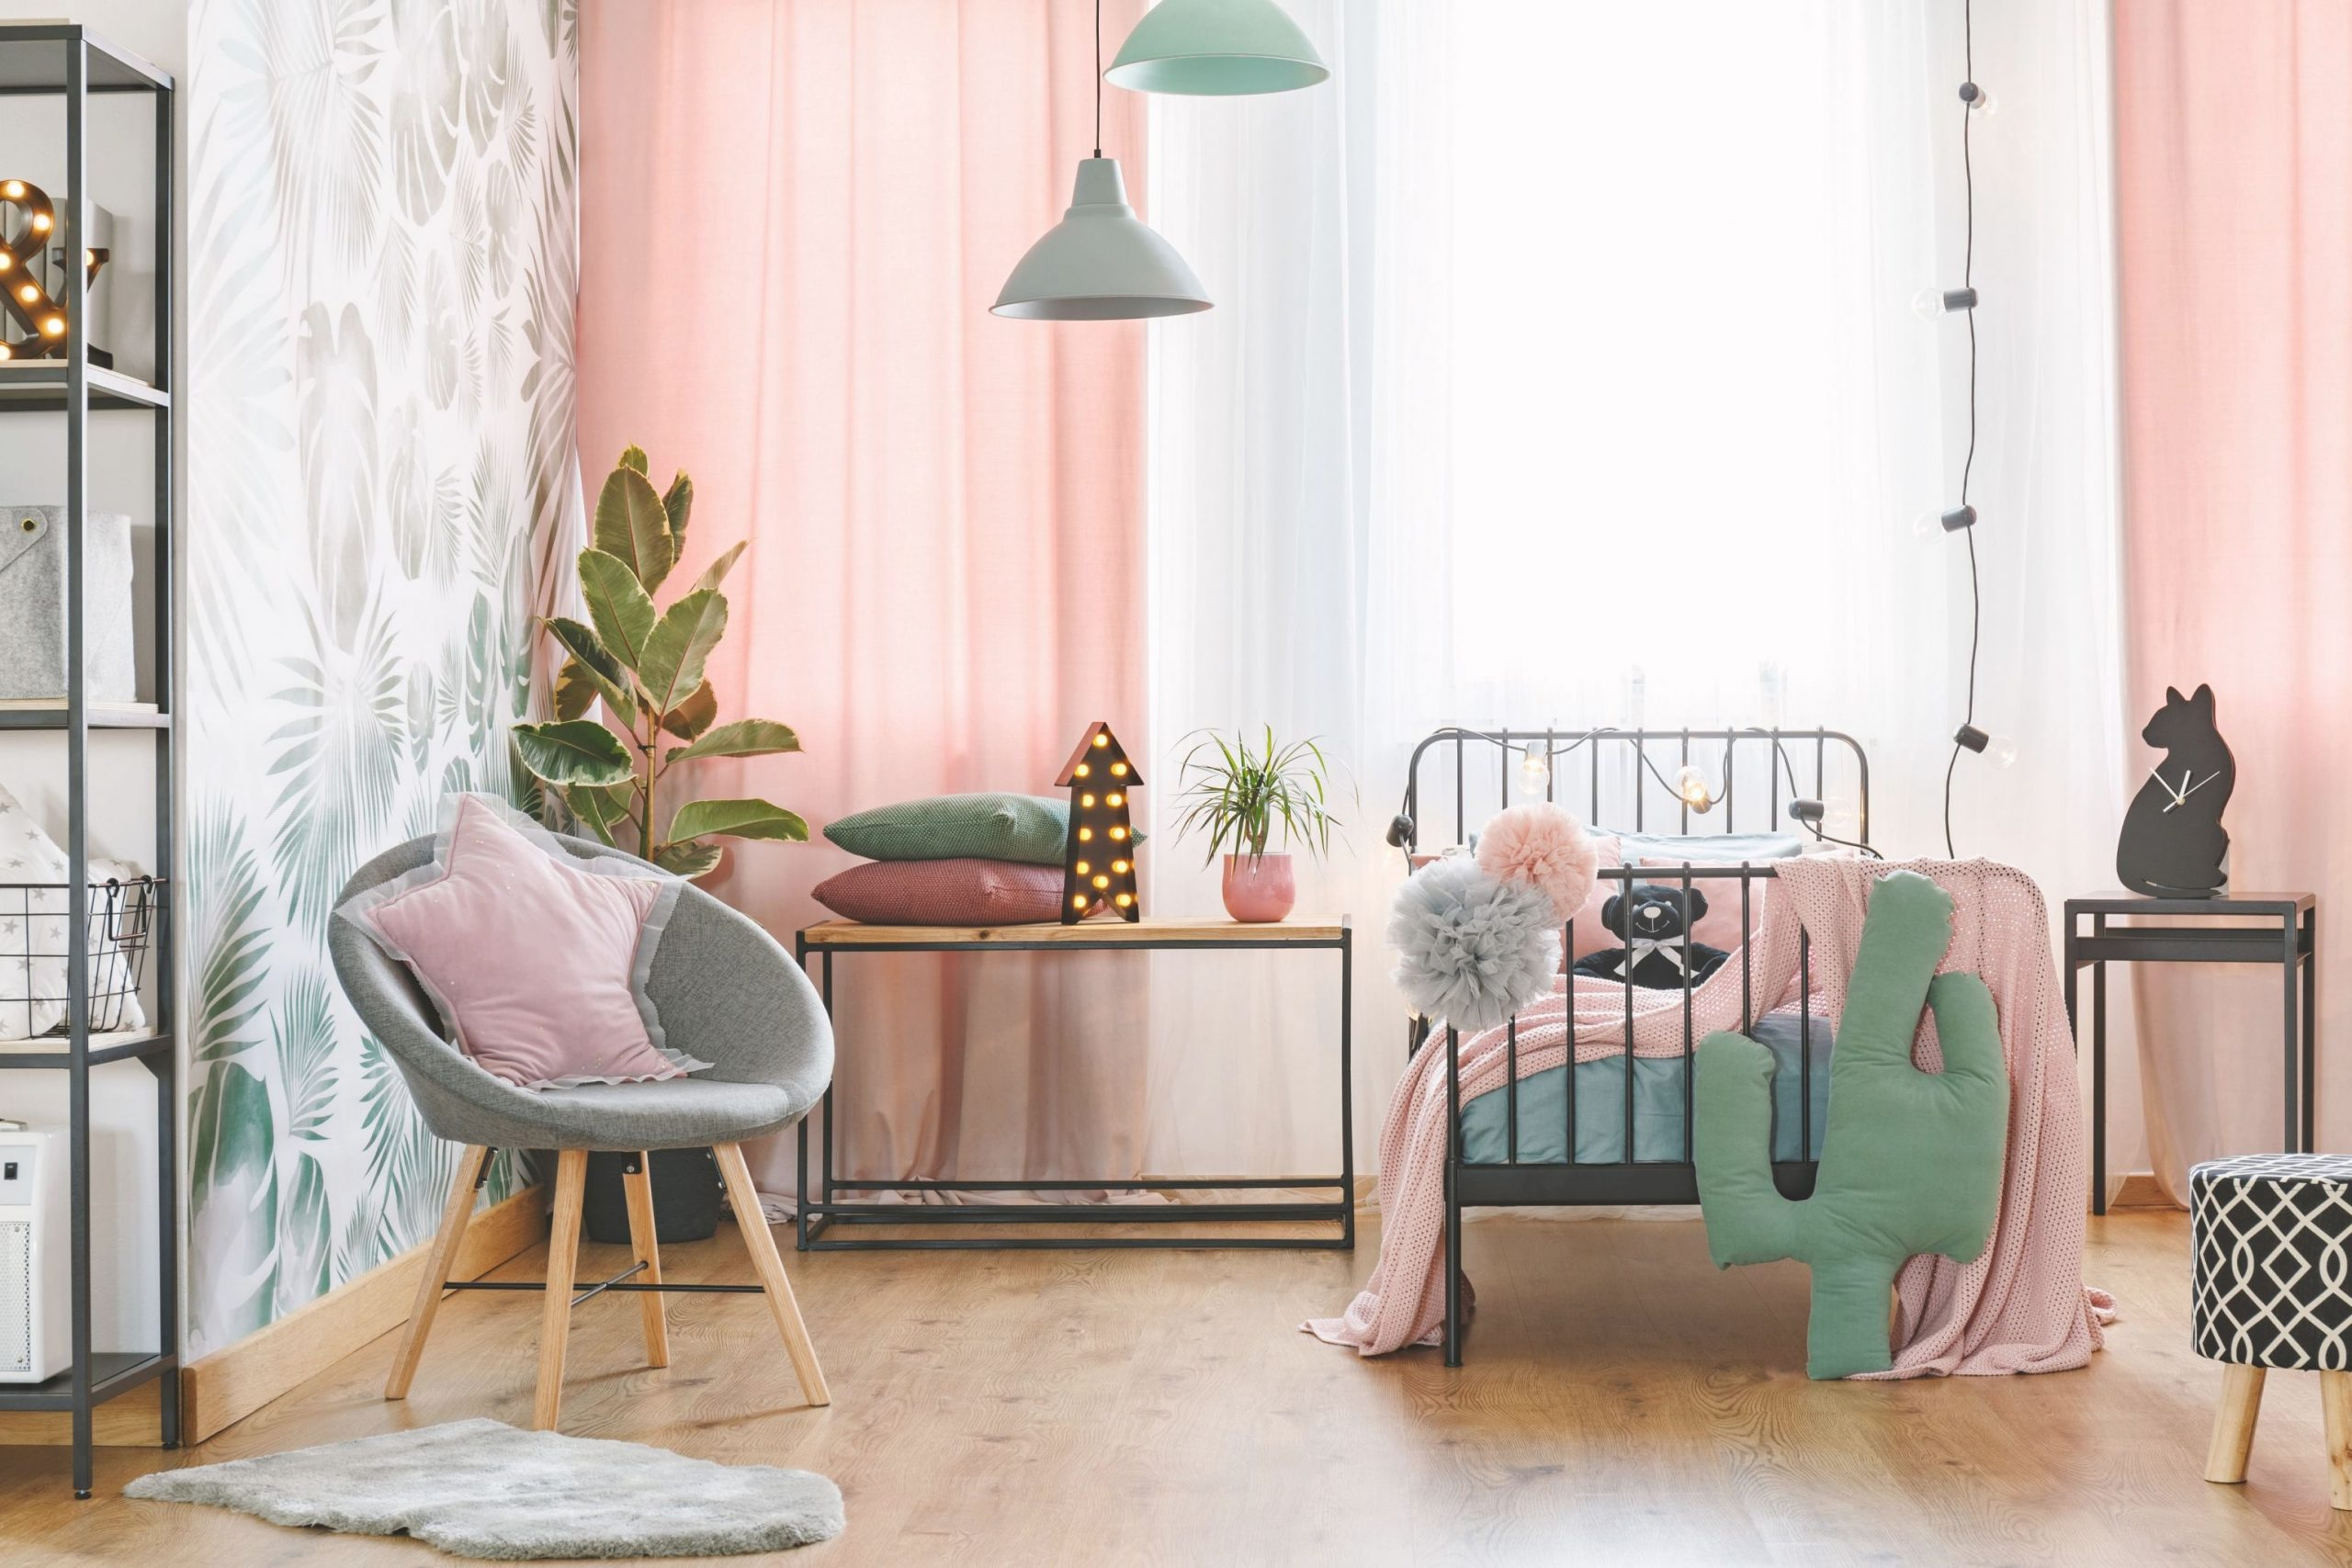 15 Girls' Room Ideas — Baby, Toddler & Tween Girl Bedroom throughout Beautiful Bedroom Decorating Ideas For Girls